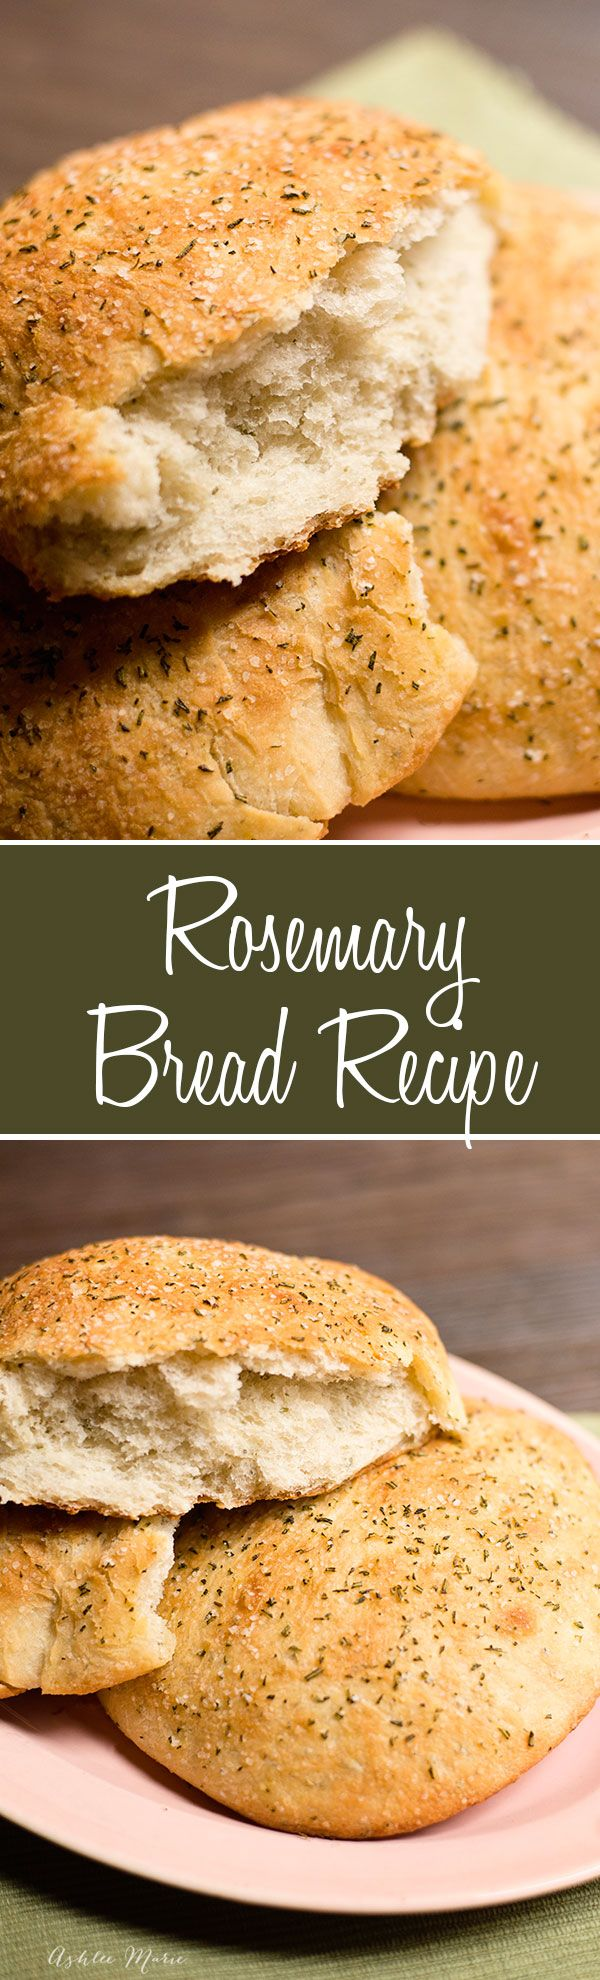 homemade rosemary bread, it is easy to make, tastes amazing and goes well with any meal